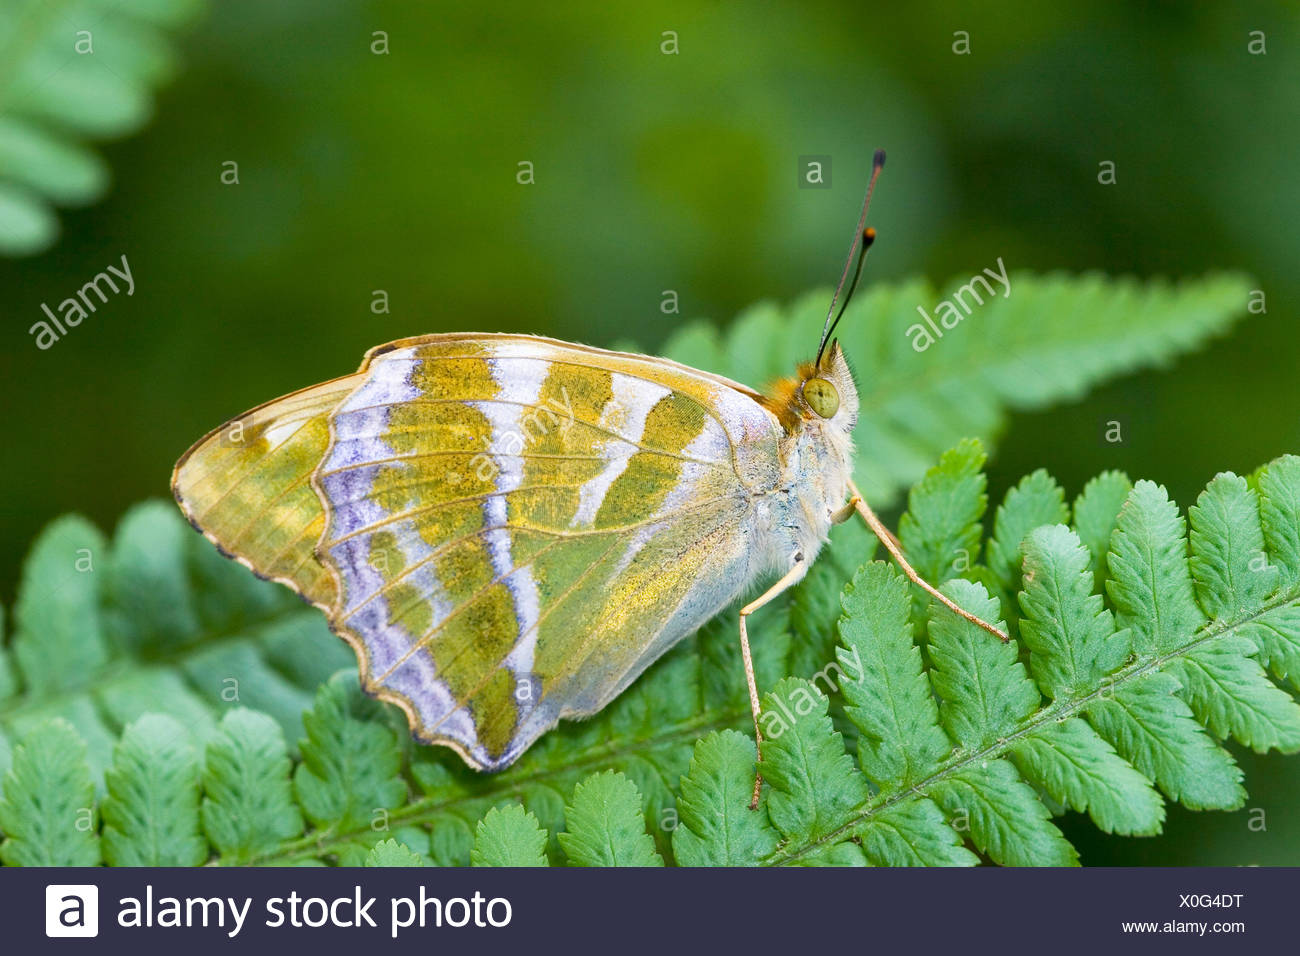 silver-washed fritillary (Argynnis paphia), on a leaf, Germany - Stock Image